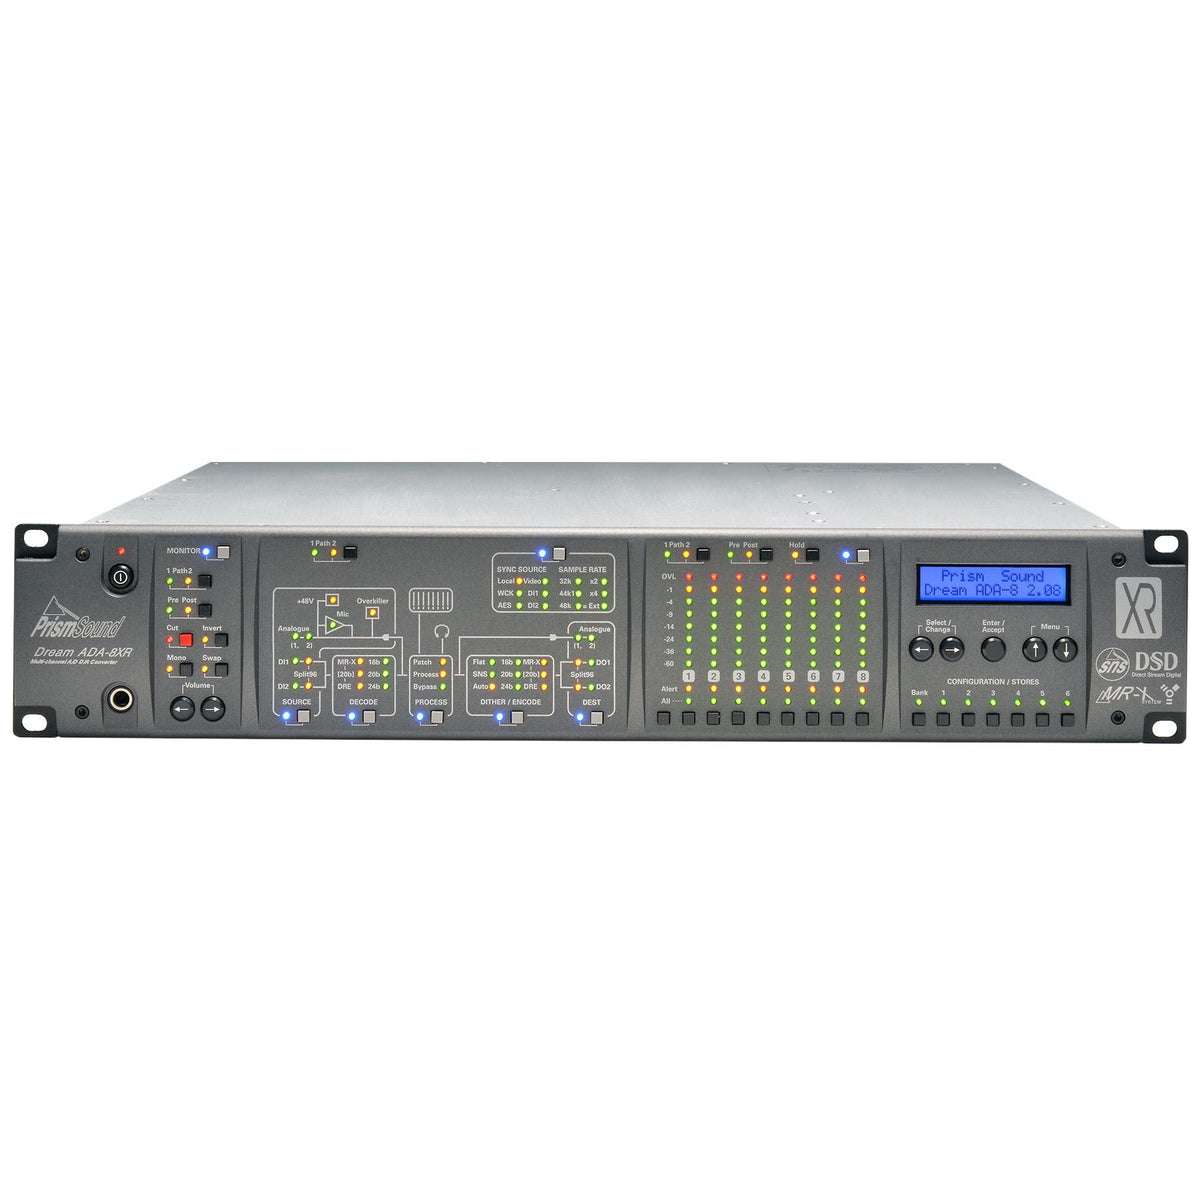 Prism Audio Dream Series ADA-8XR with 16 Channels of DA Conversion and PTHDX Digital I/O Card